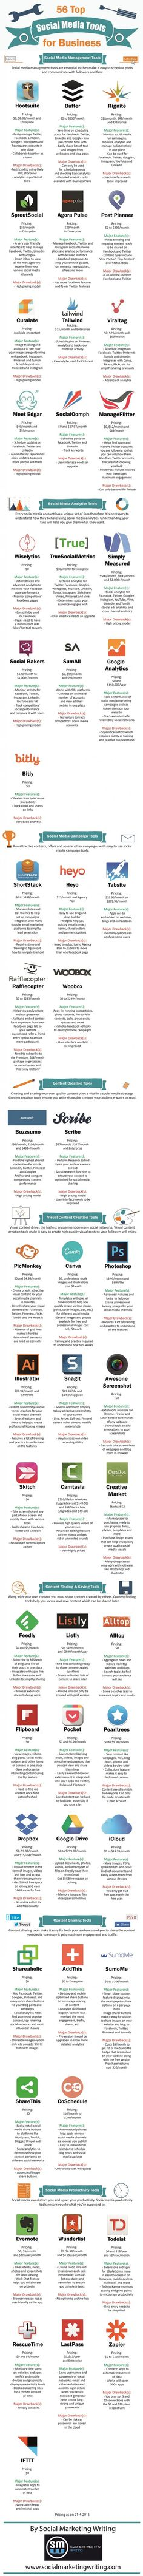 56-Top-Social-Media-Tools-for-Business-Infographic.jpg